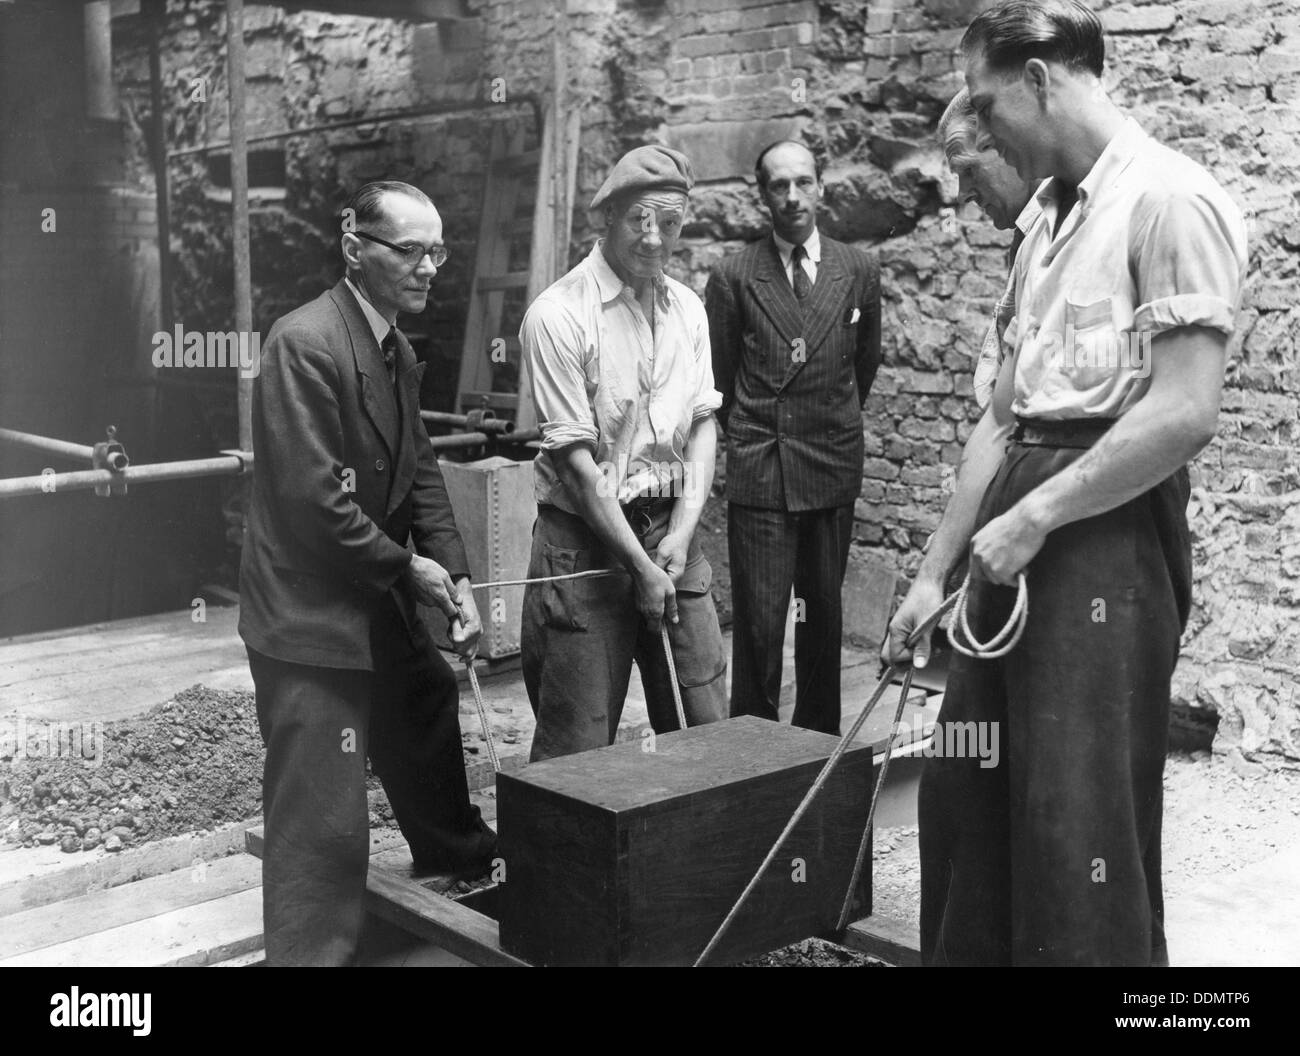 Burying a box containing copies of the Jewish Chronicle, London, 1955. Stock Photo